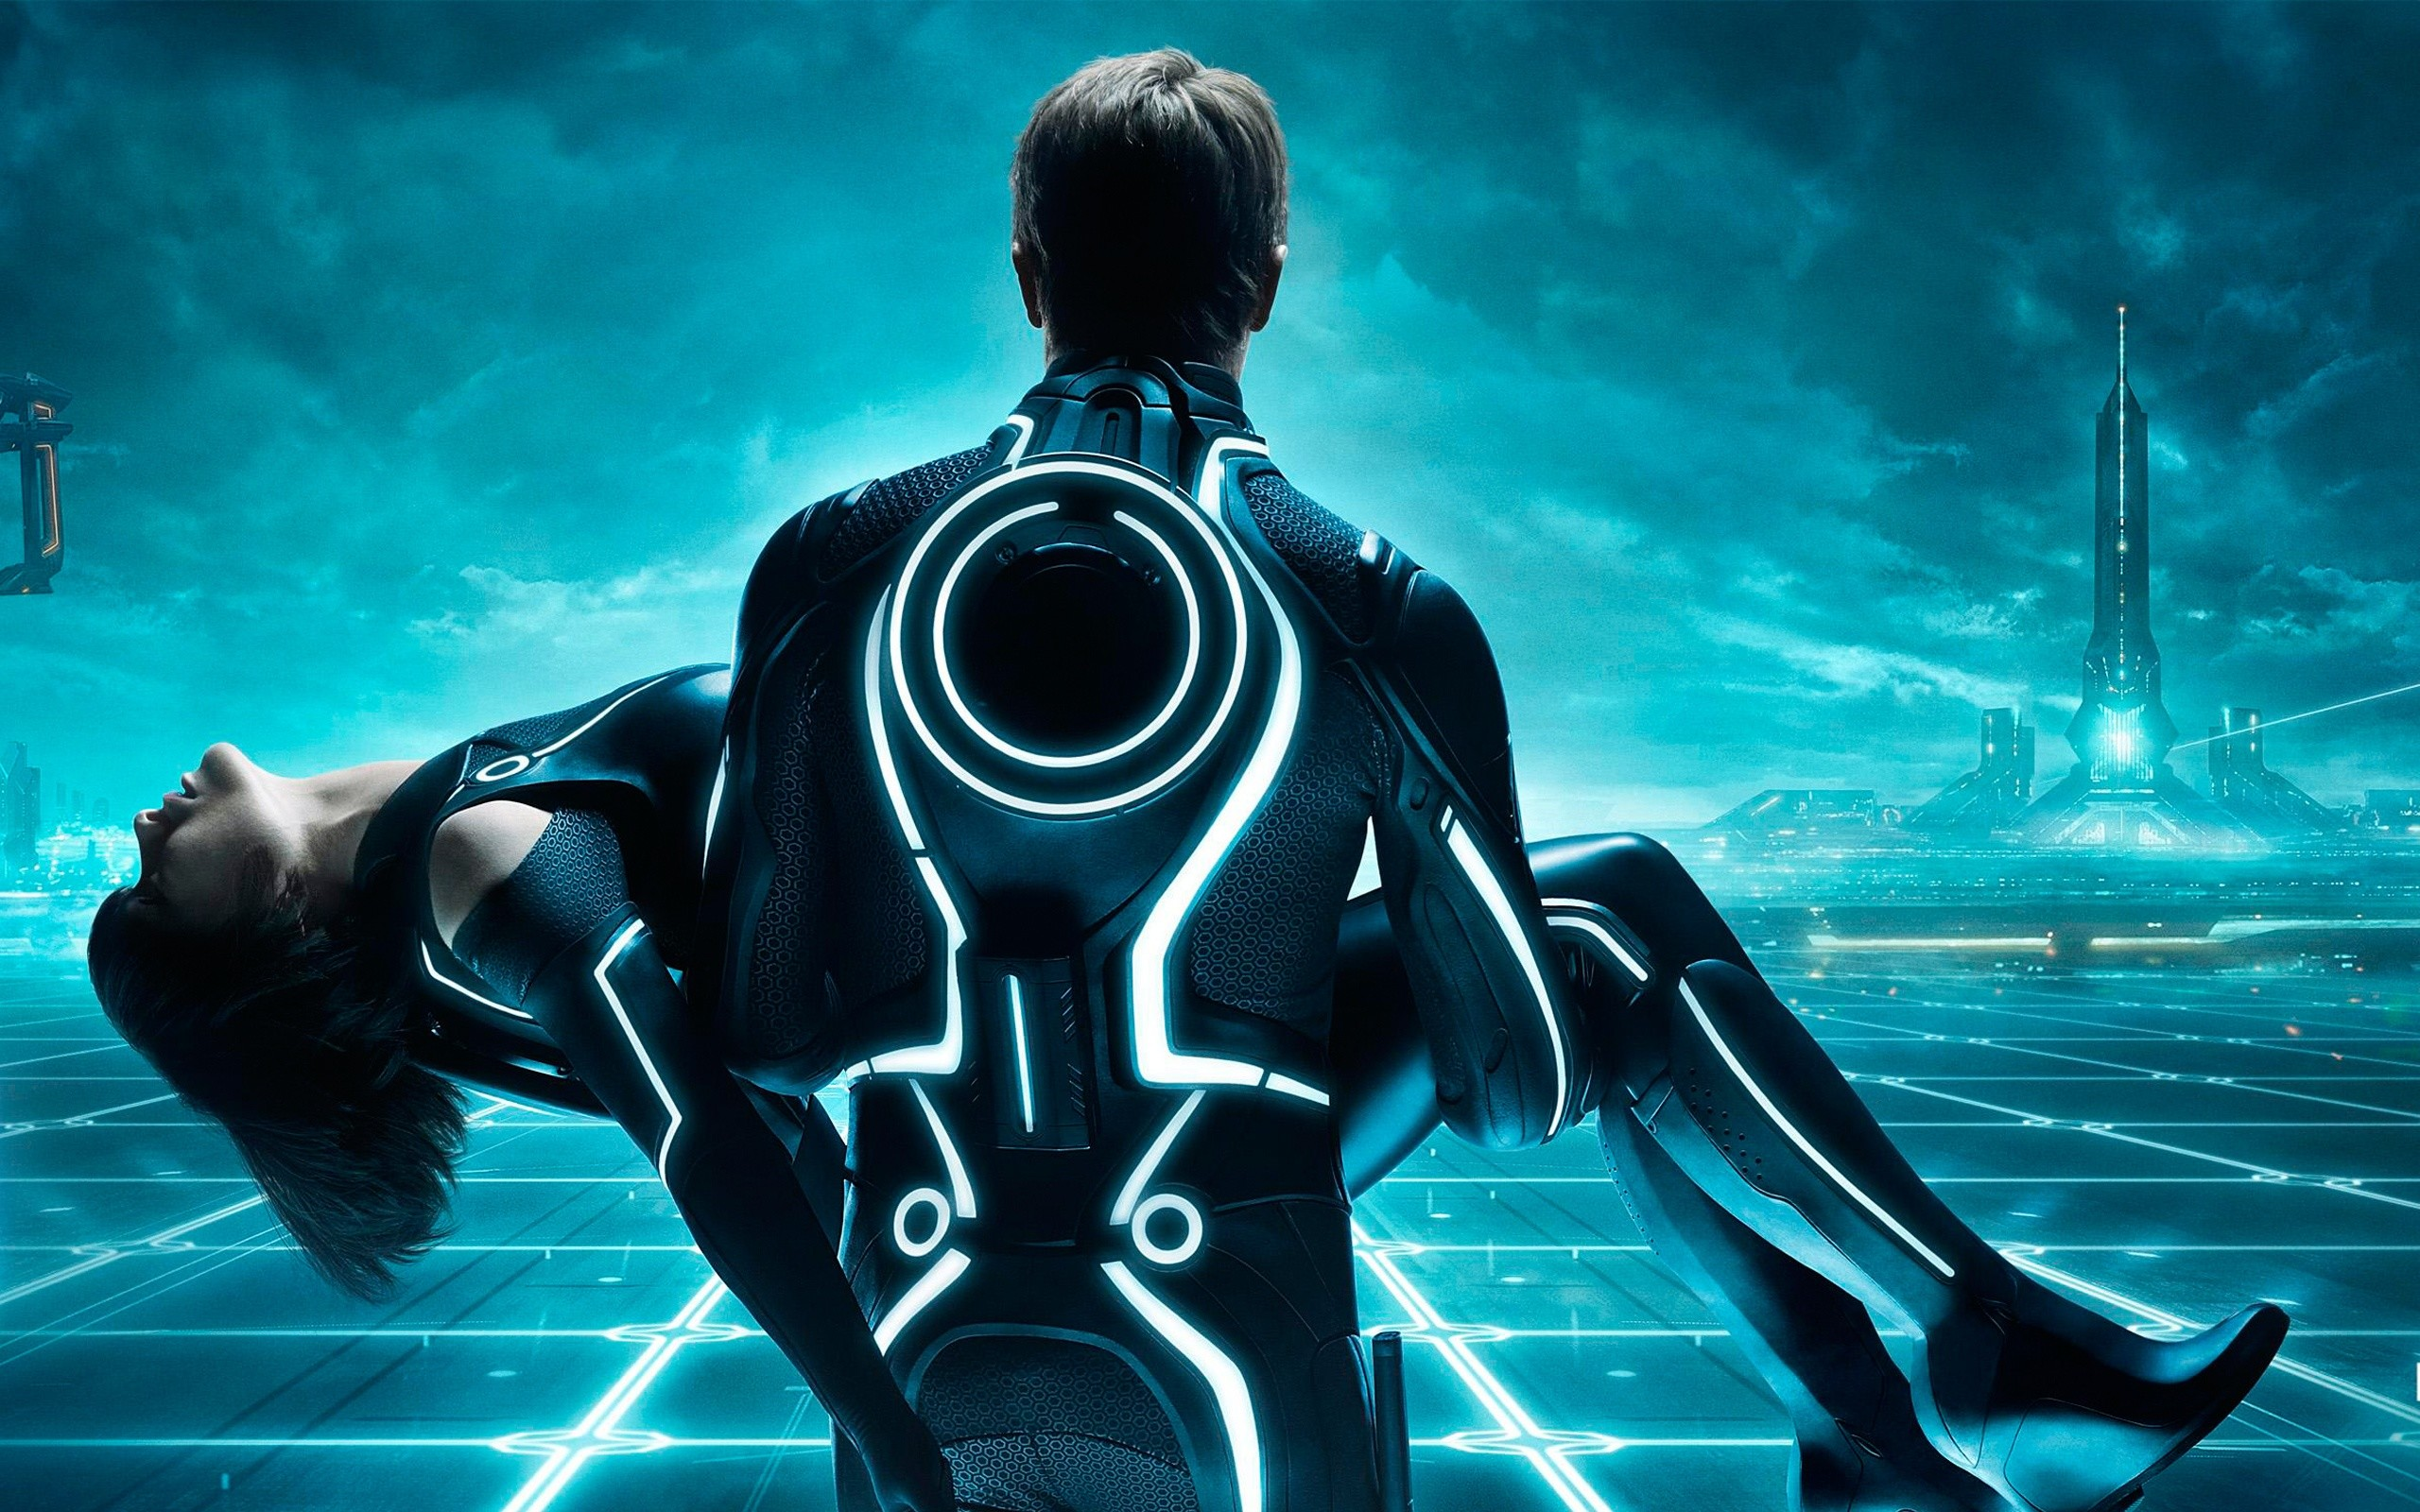 2560x1600 GalacticGirl images TRON Legacy Comic wallpaper and background